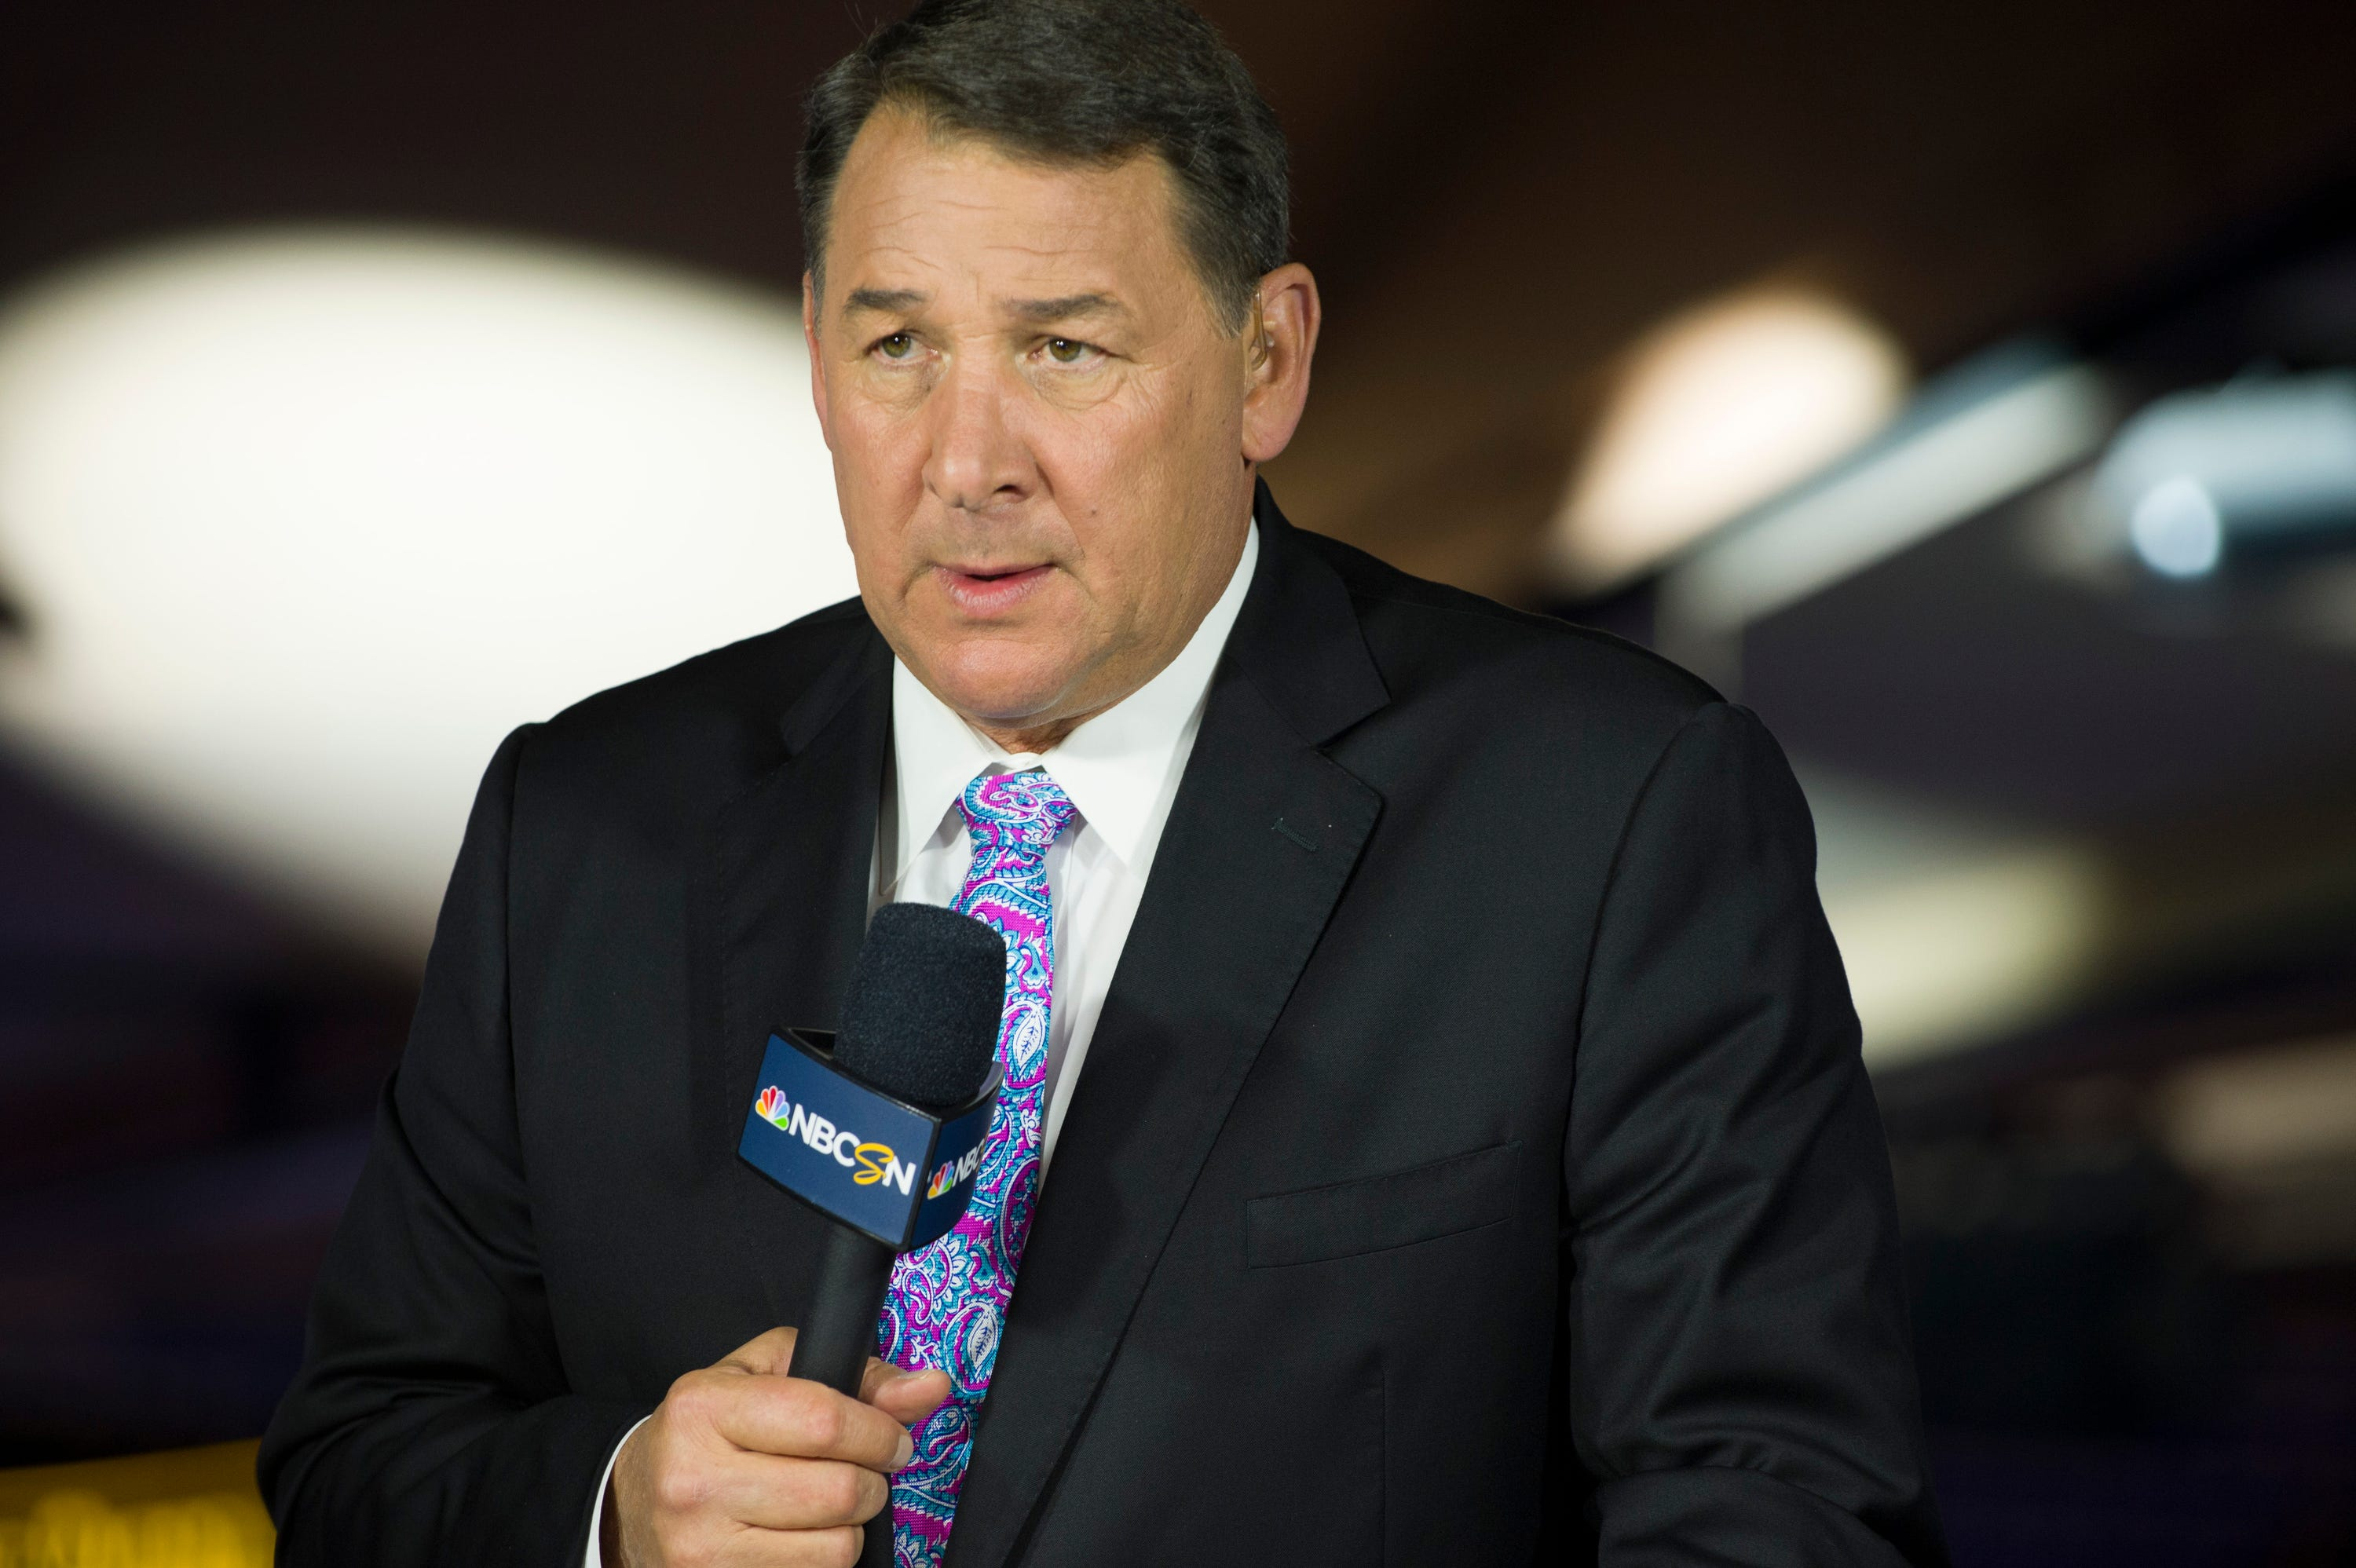 Mike Milbury stepping away from NBC Sports role for rest of NHL playoffs after misogynistic comment